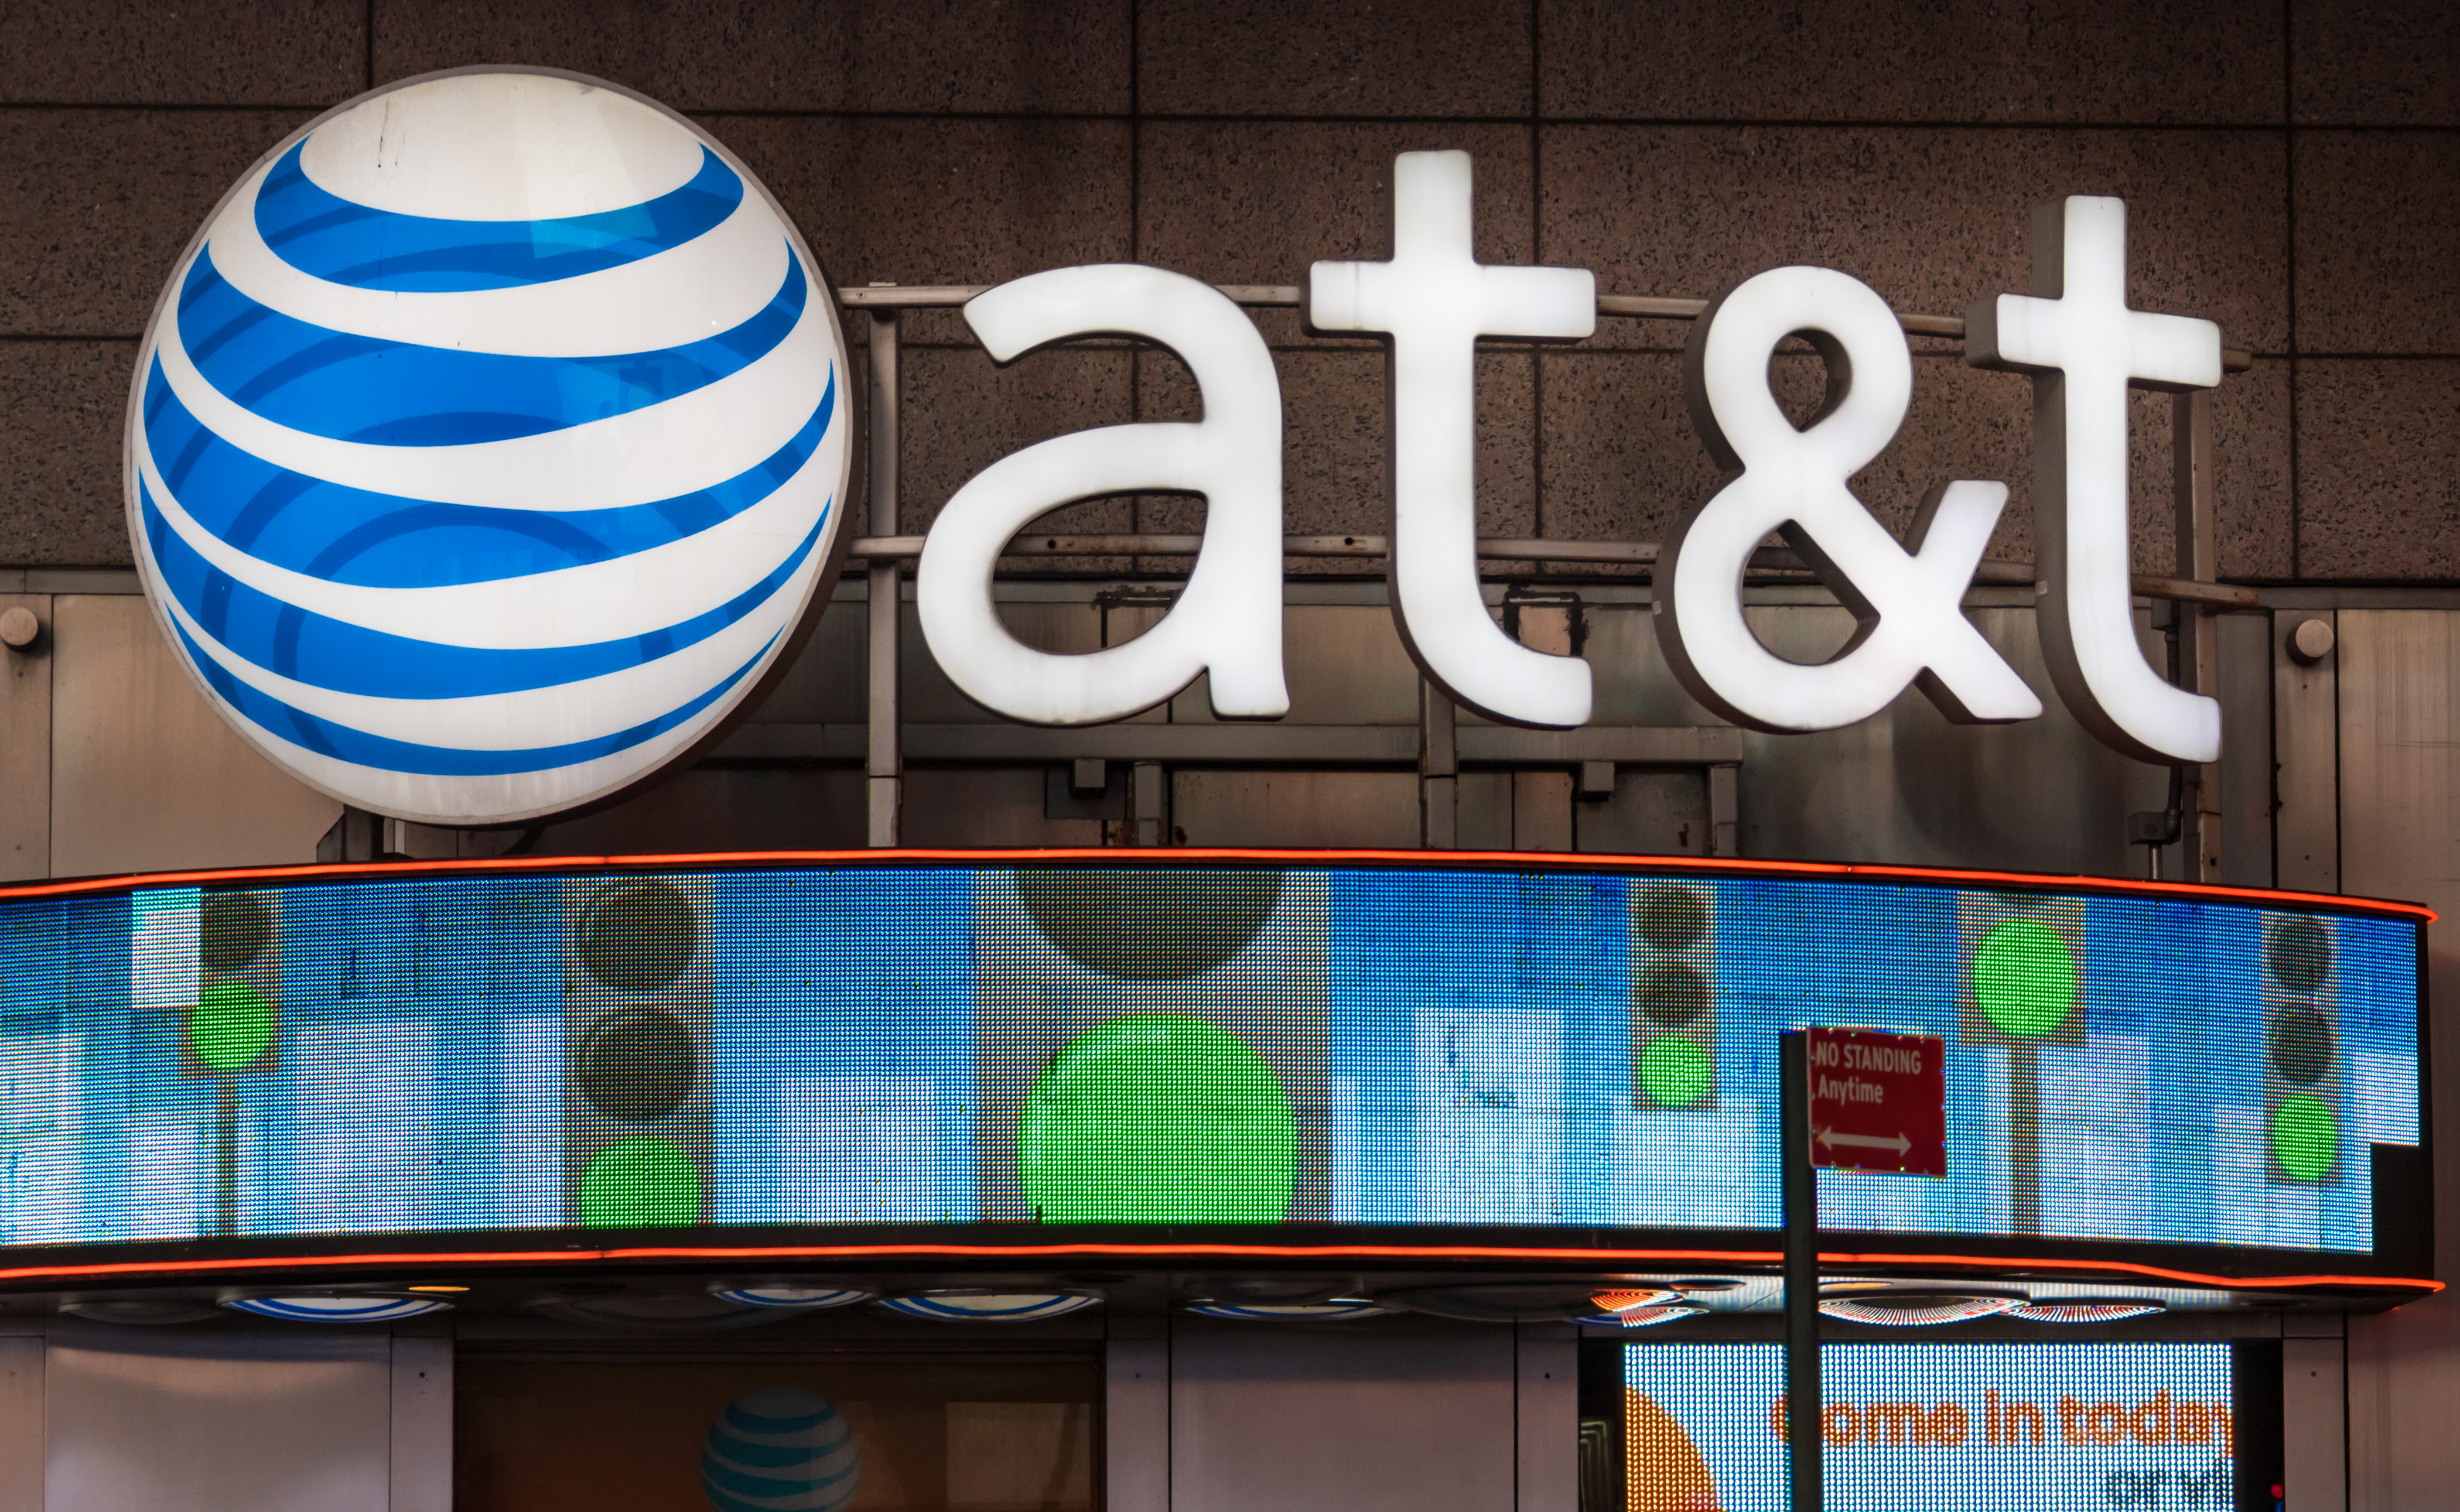 AT&T logo in a large lit-up display